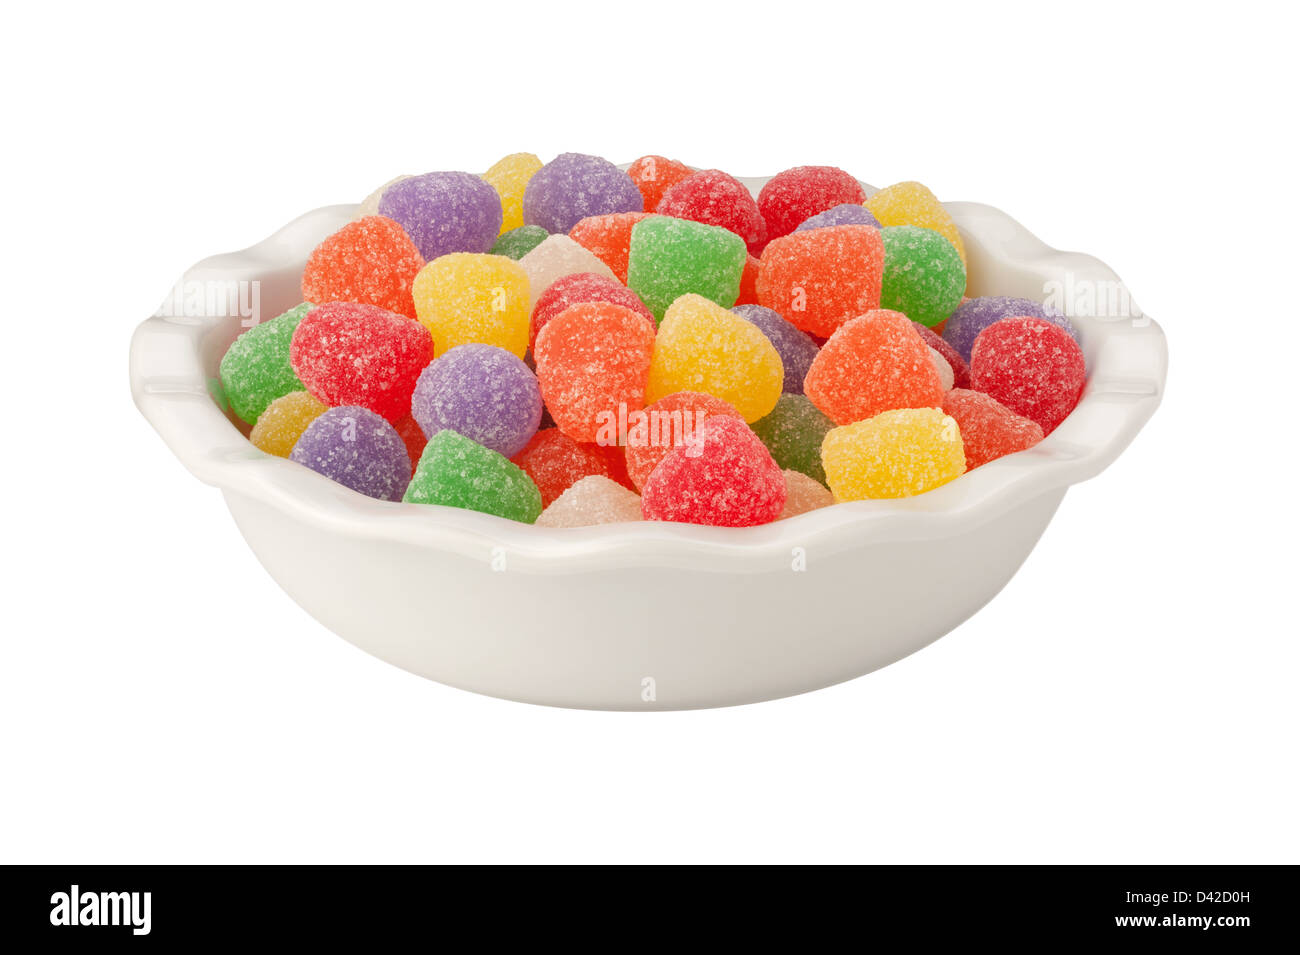 Gum Drops Isolated on a white background - Stock Image